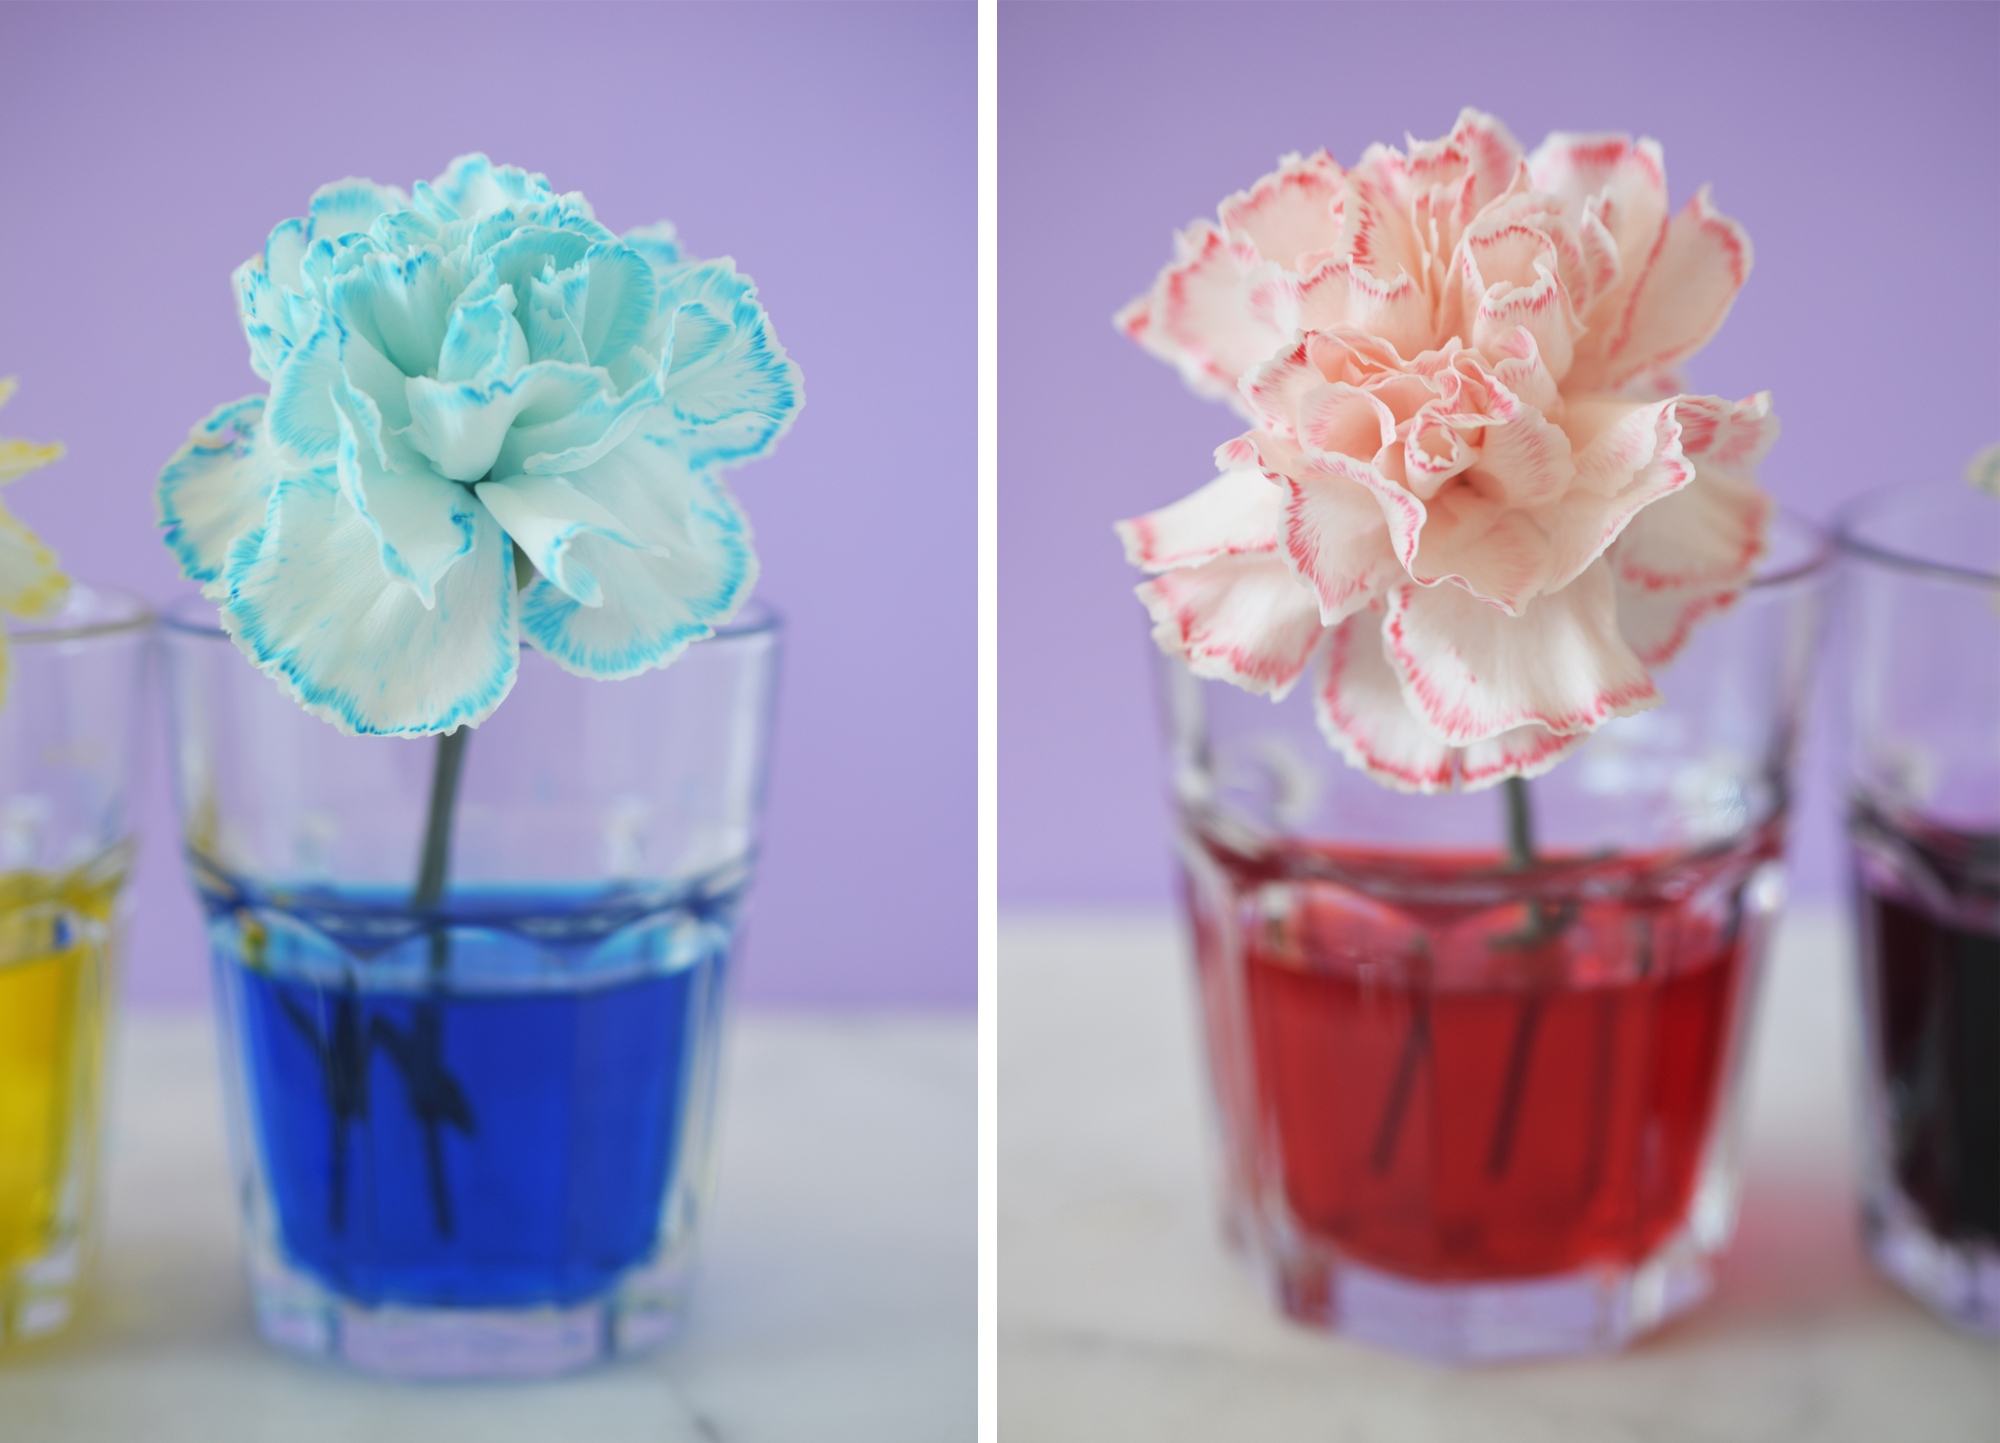 color changing flowers science experiment for kids